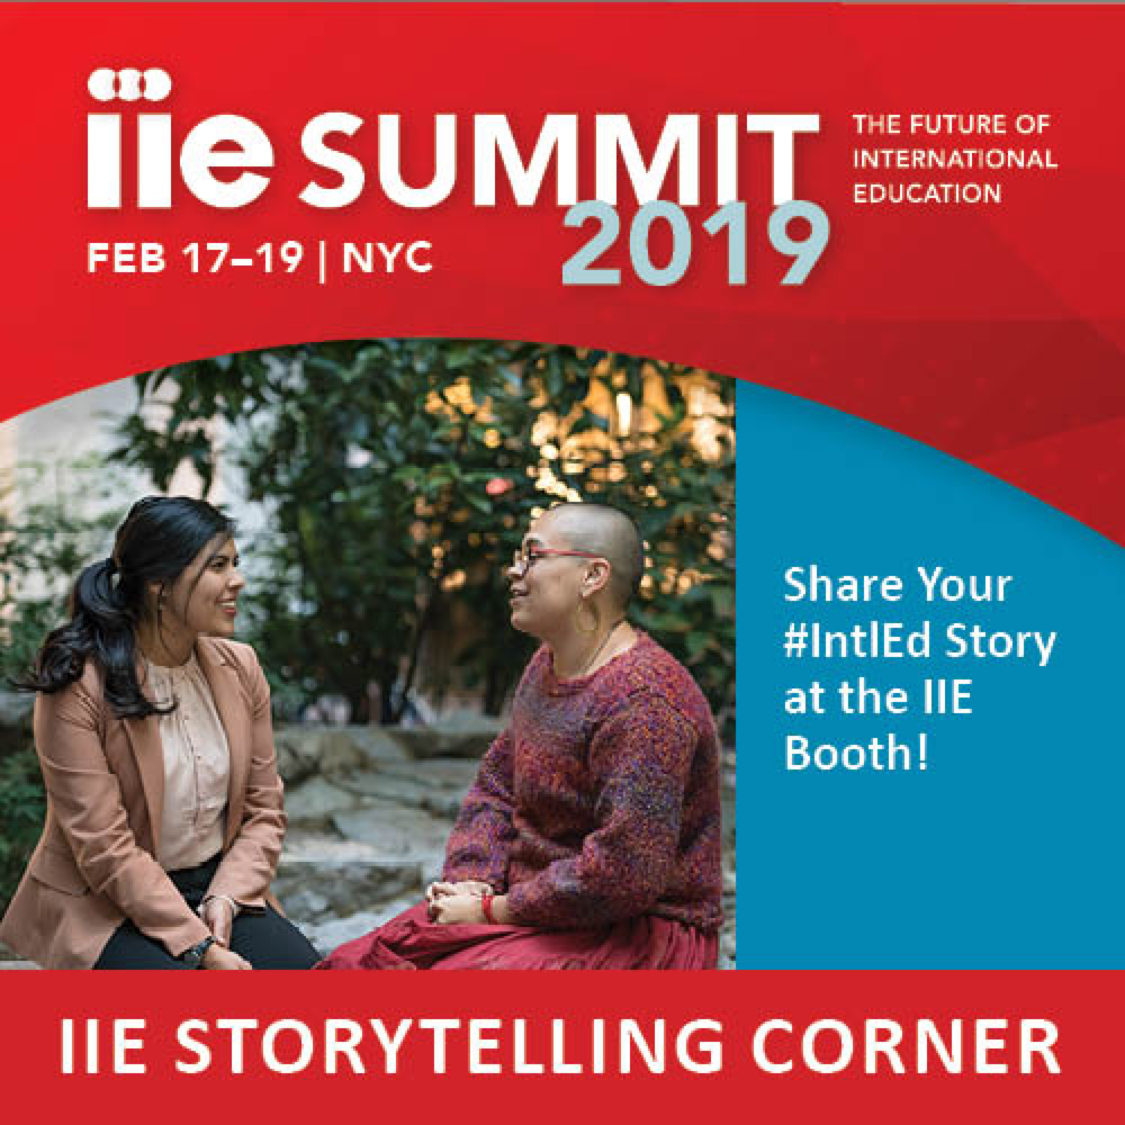 Participate in the Story Corner at the IIE Summit